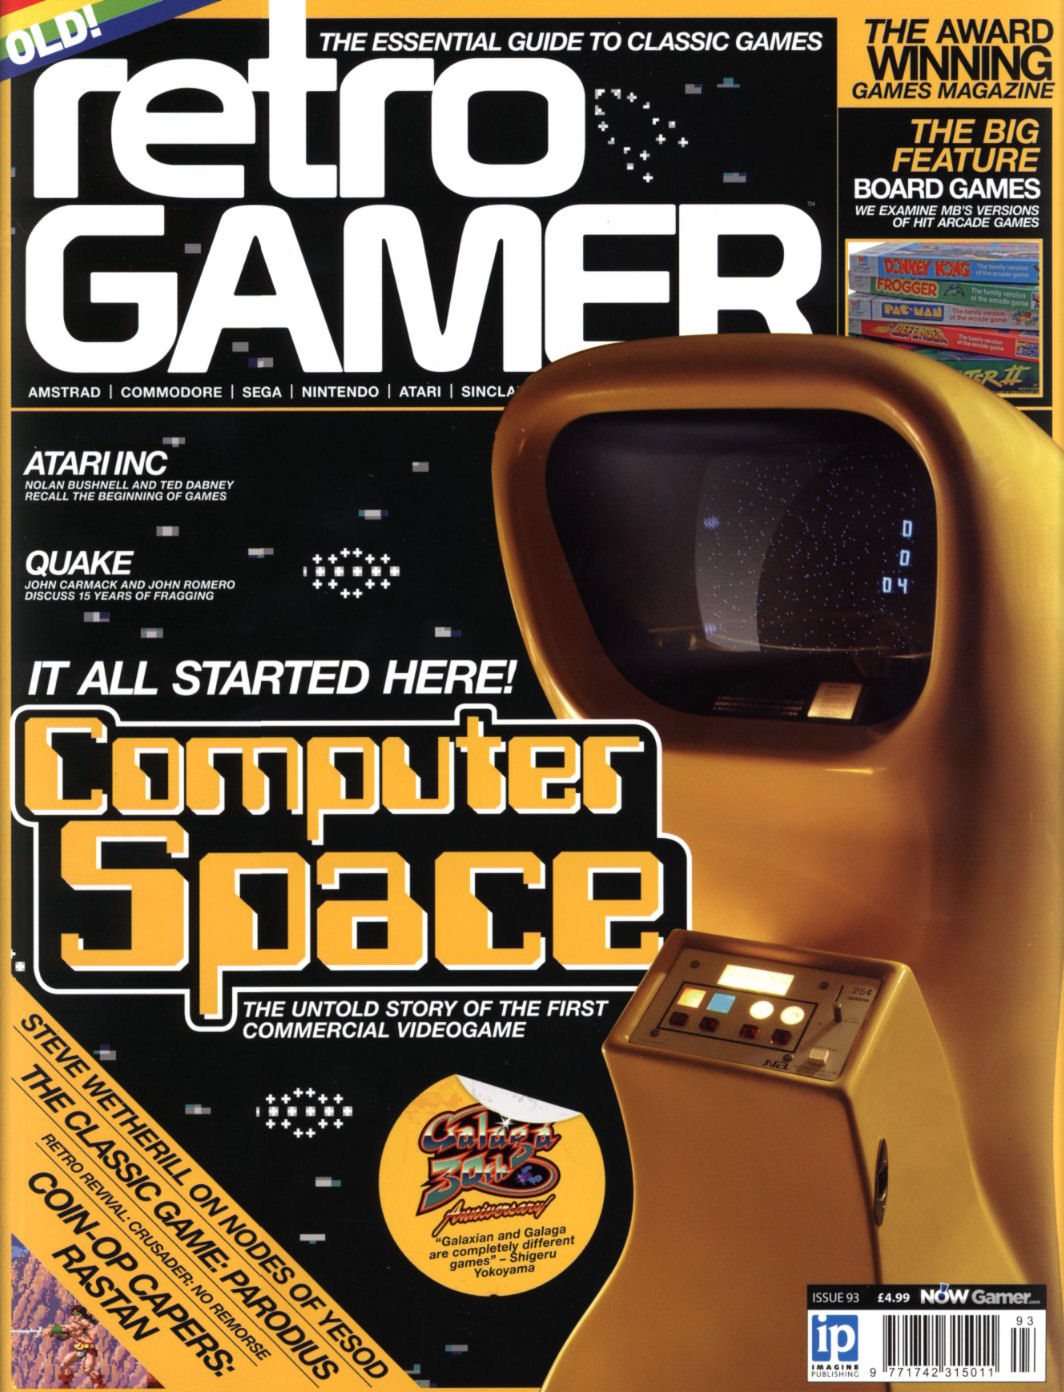 Retro Gamer Issue 93 | Magazines from the Past Wiki | FANDOM